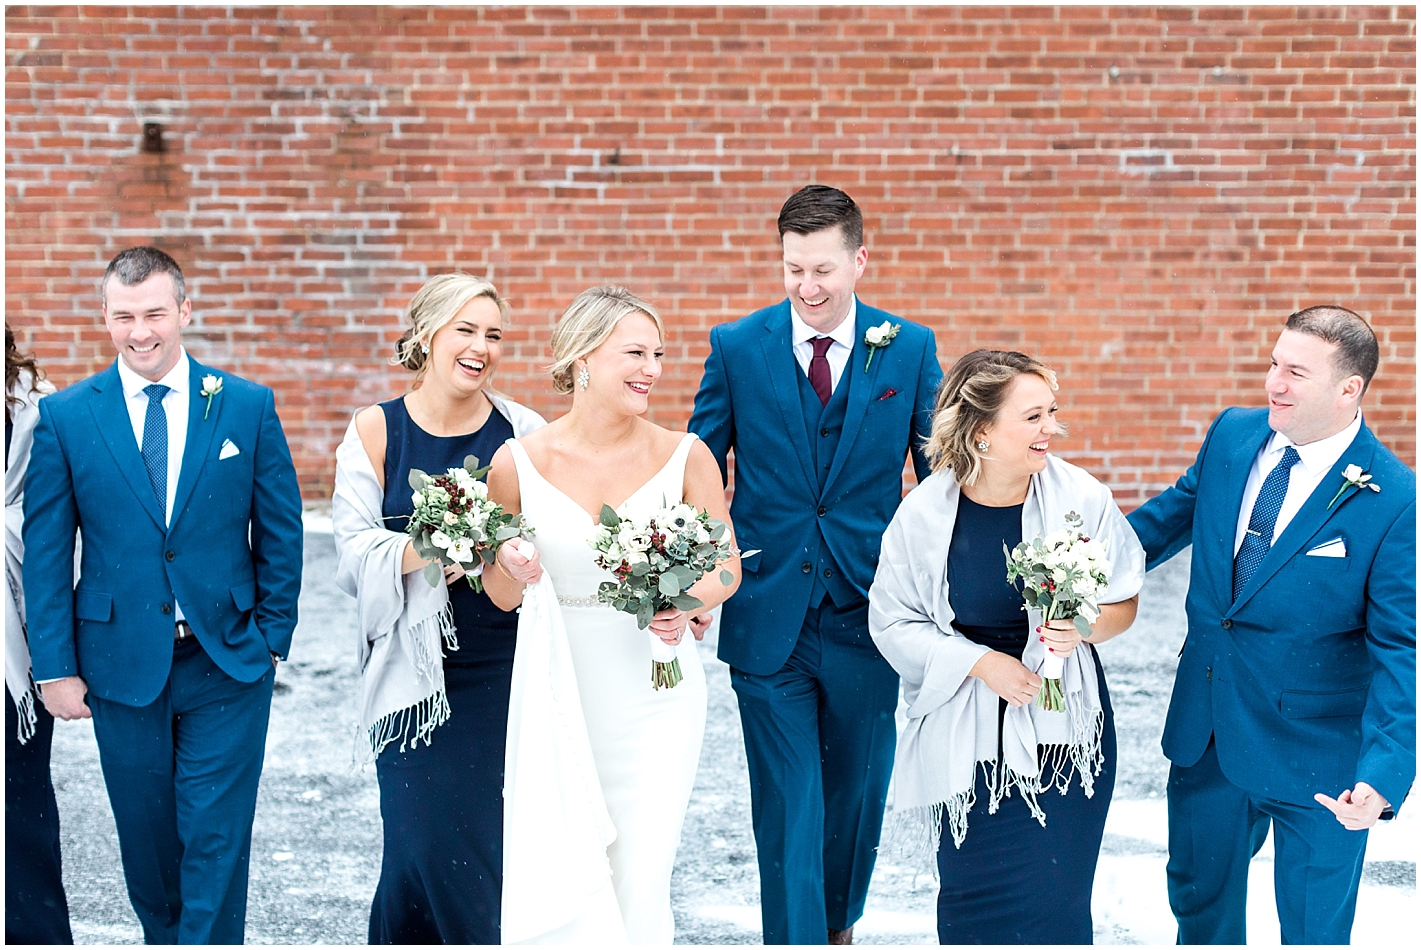 Candid Wedding Party Photo by Alyssa Parker Photography